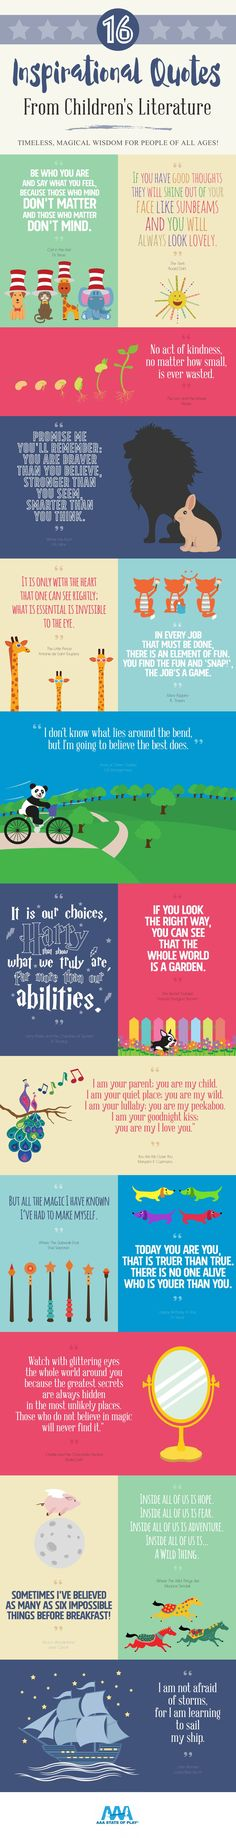 16 Inspirational Quotes From Children's Literature #infographic #Quotes…